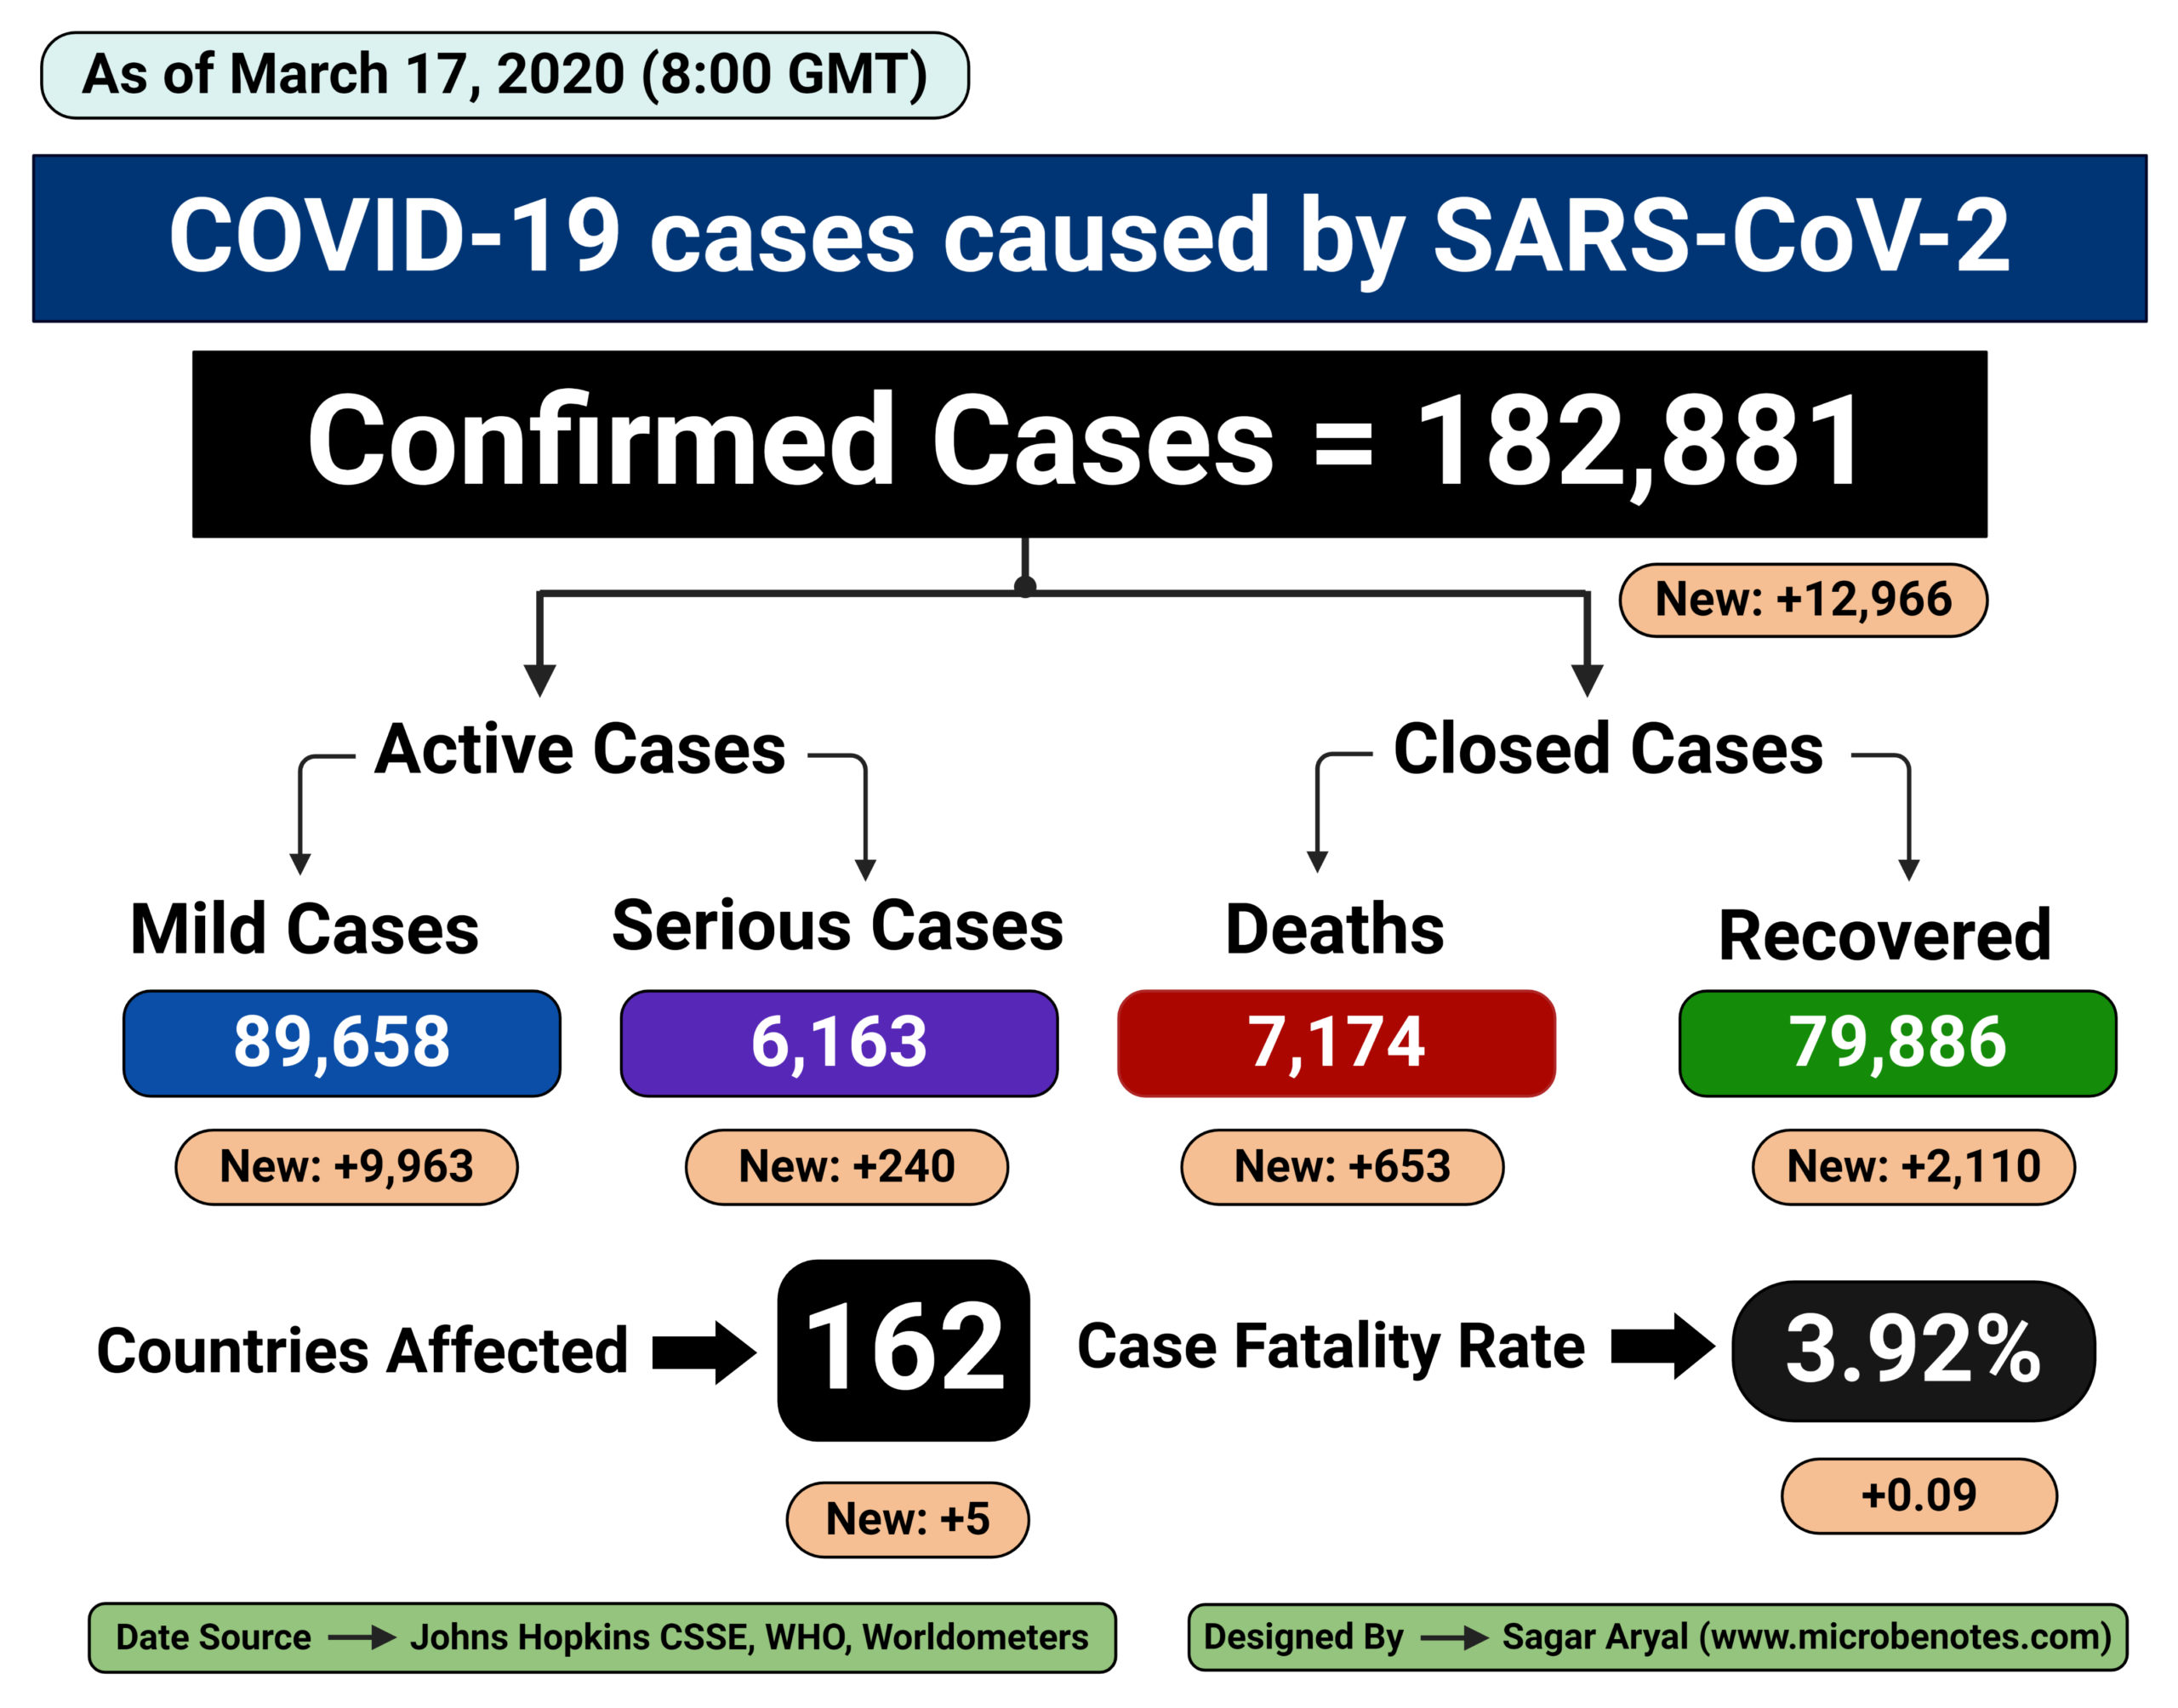 Epidemiology of COVID-19 caused by SARS-CoV-2 as of March 17, 2020